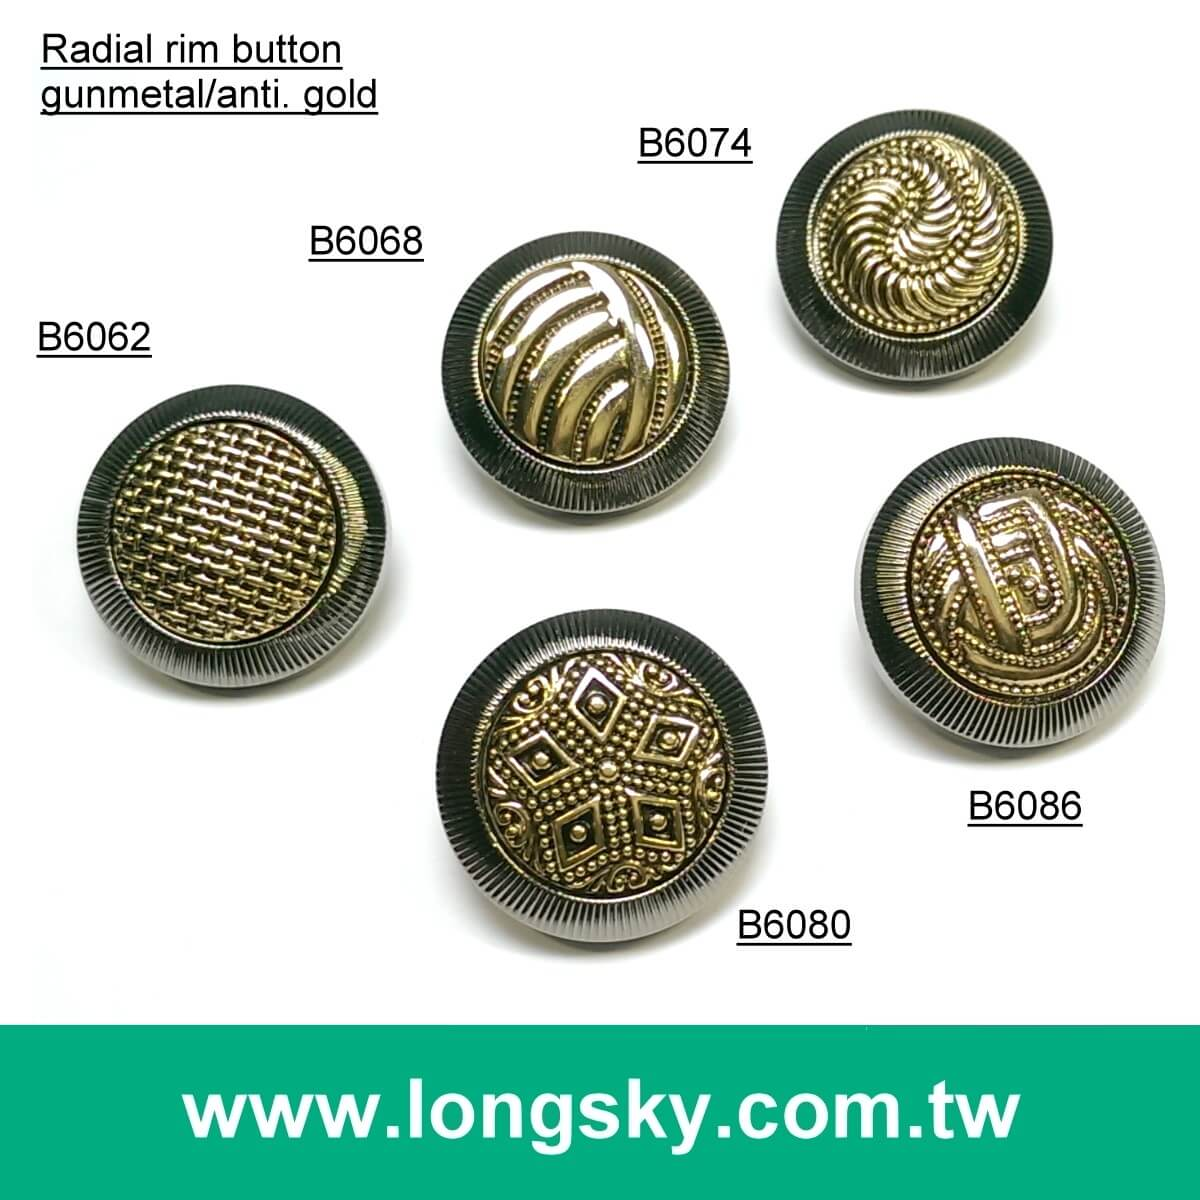 (#B6062/15mm, 21mm) 2016 fashion 2 piece assembled abs button for stylish wear